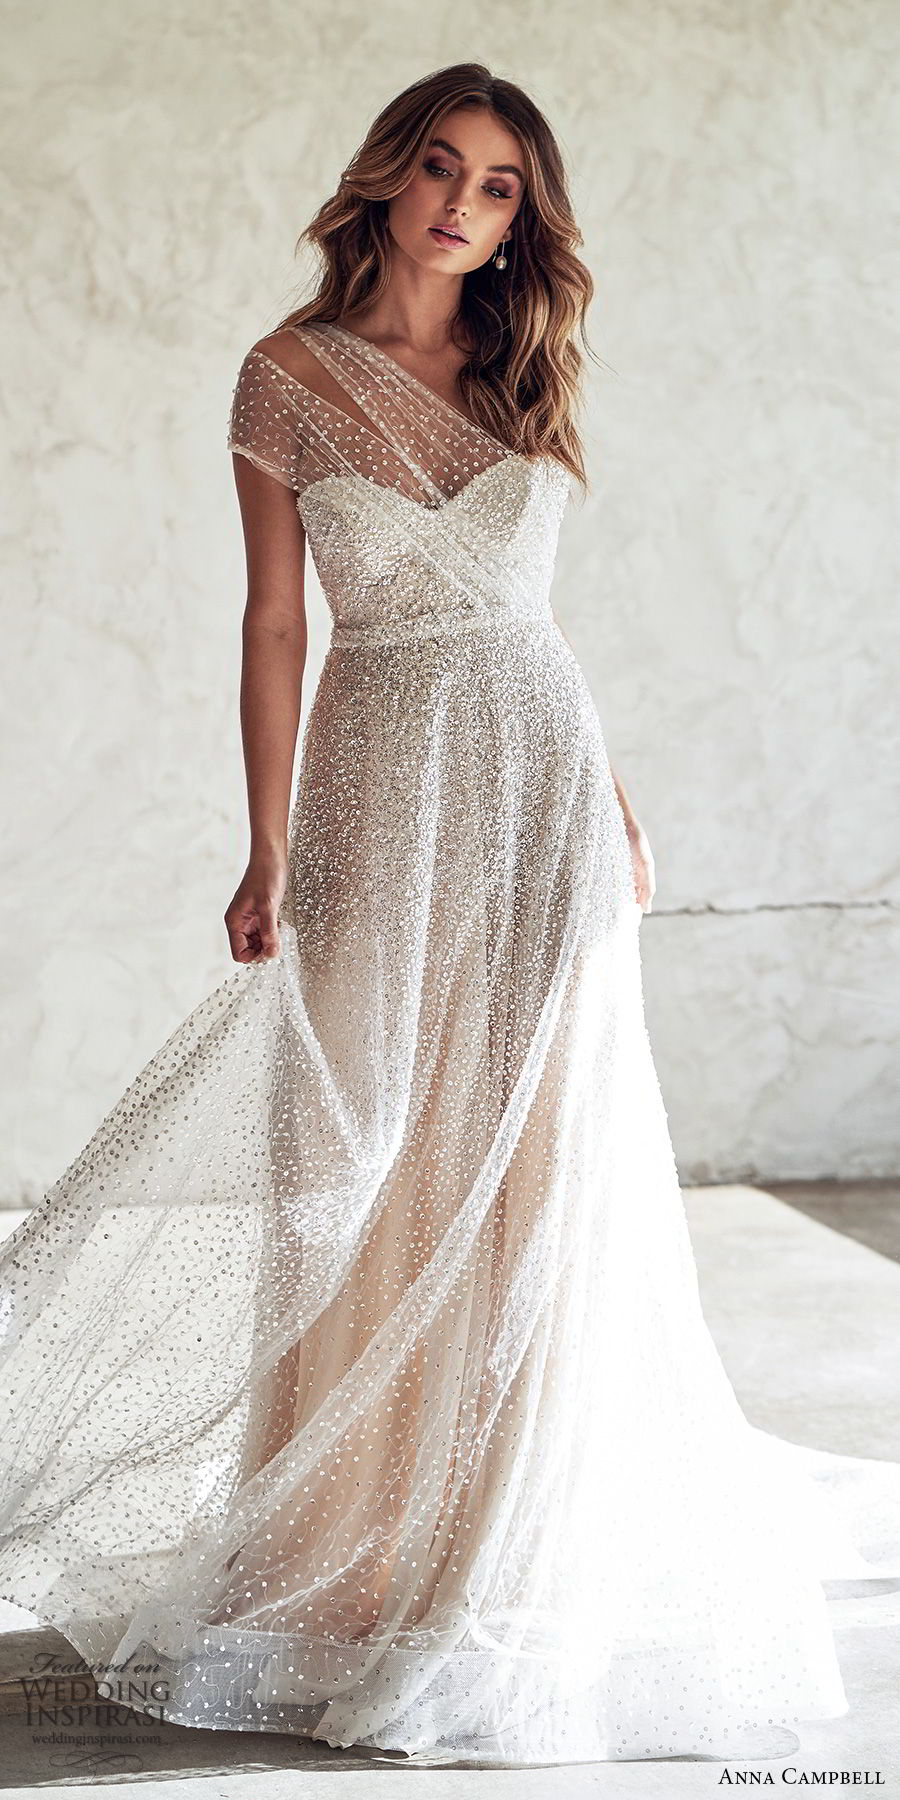 anna campbell 2020 bridal illusion one shoulder ruched bodice sweetheart fully embellished a line wedding dress (13) glitzy glam romantic chapel train mv